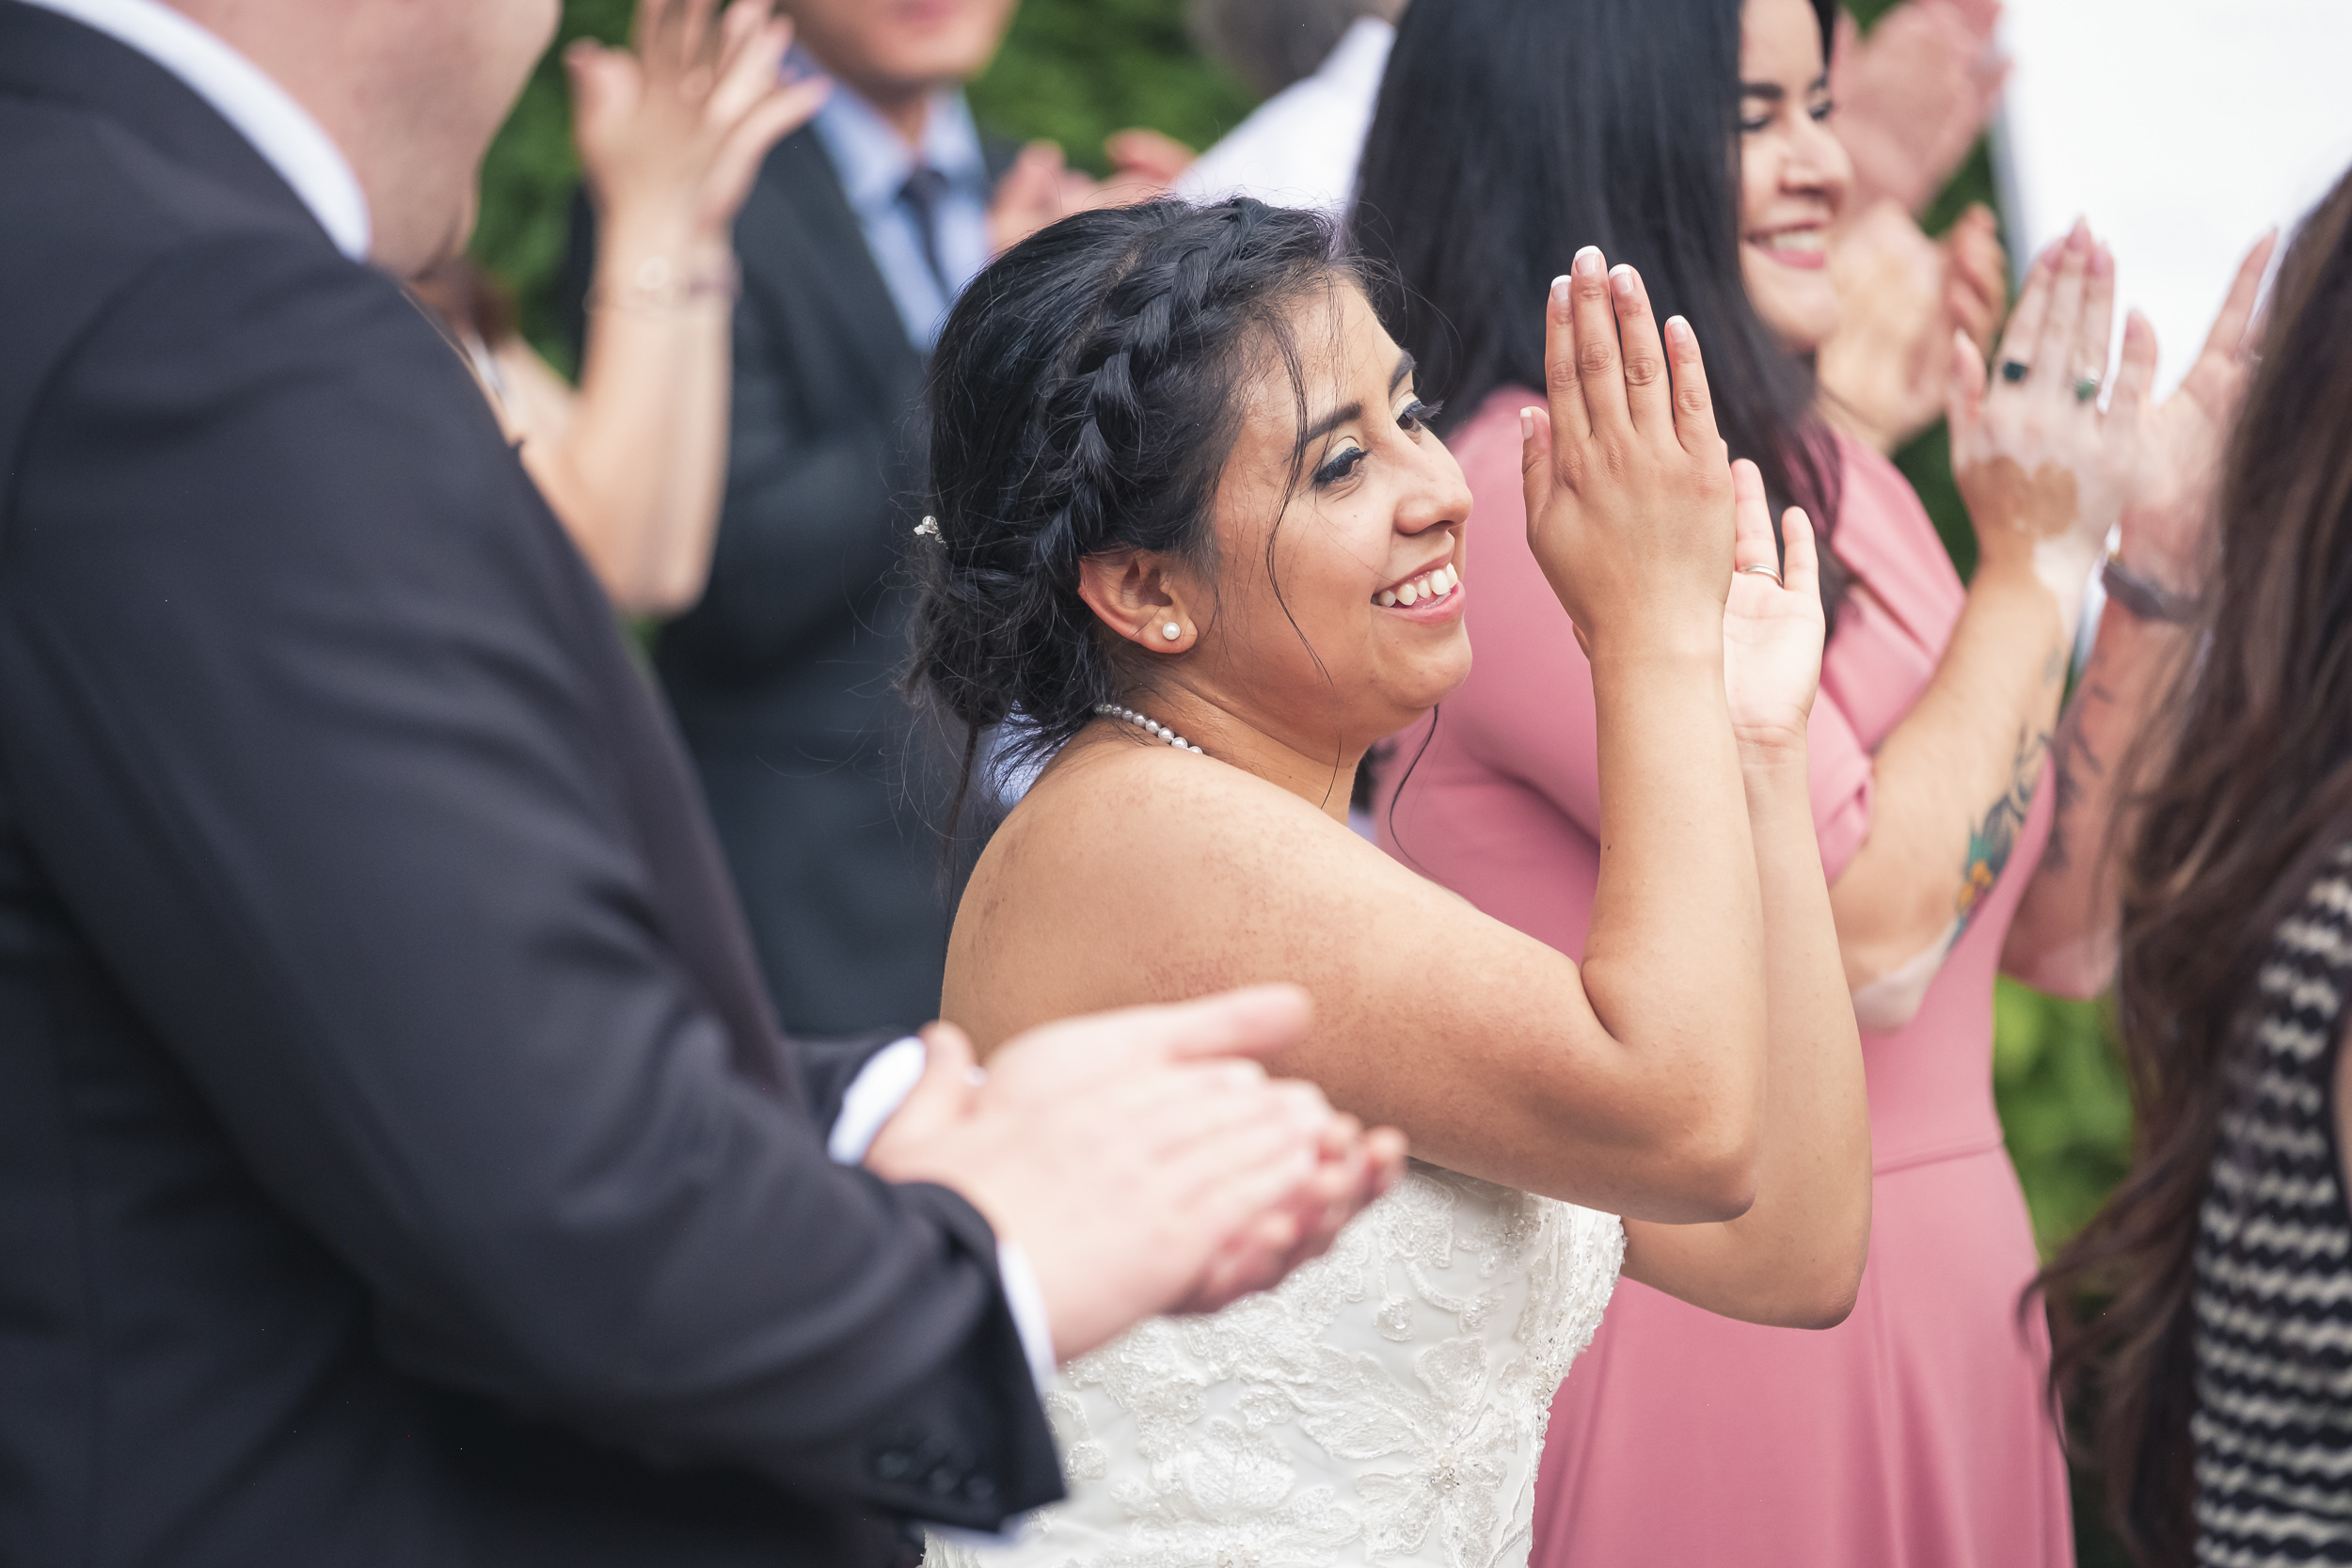 Natalie and Brian Wedding by Michael Sladek Photography-13.jpg